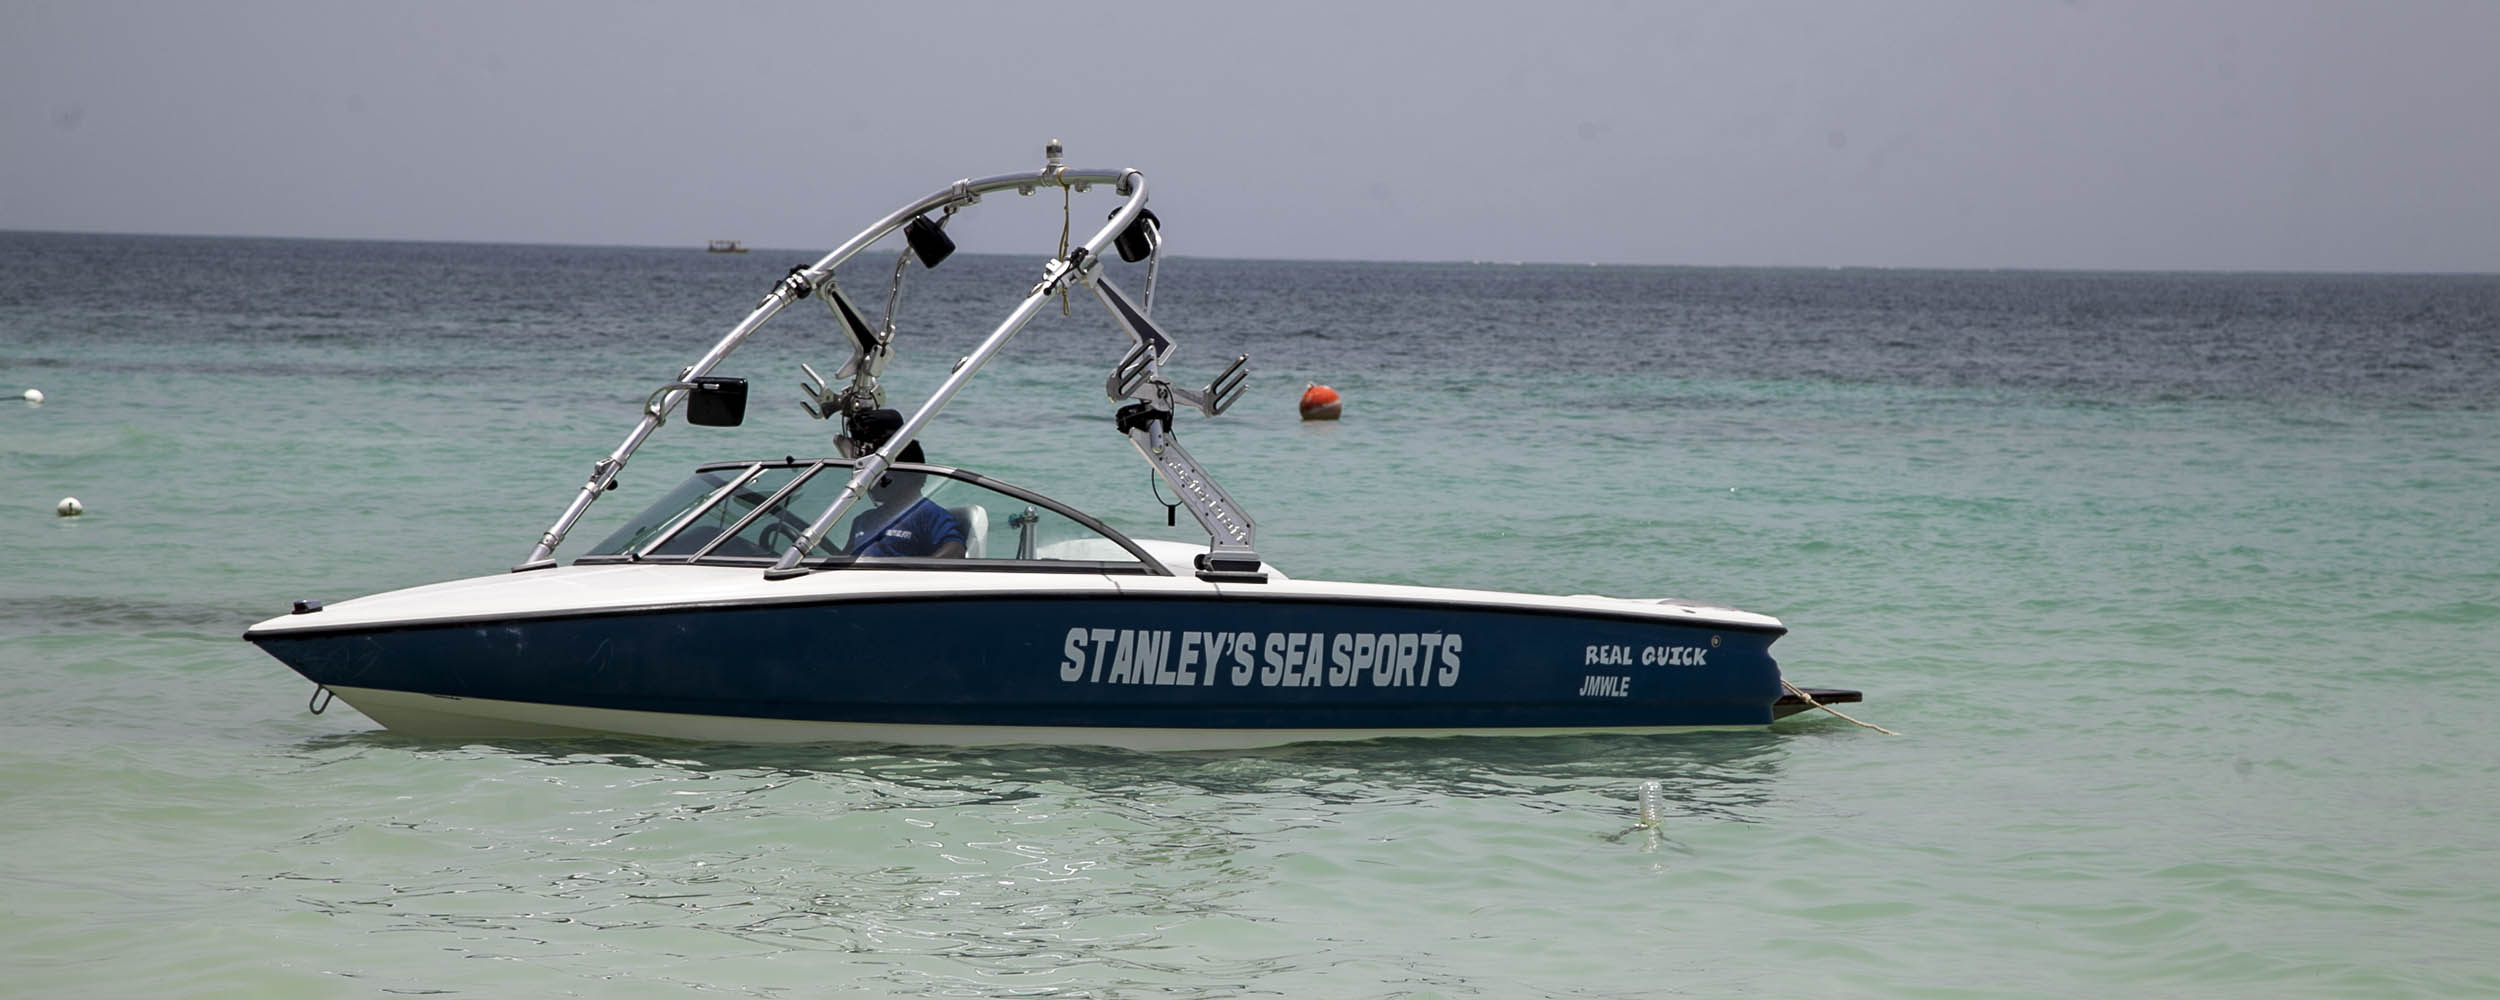 Stanley's Sea Sports - Negril Beach, Negril Jamaica